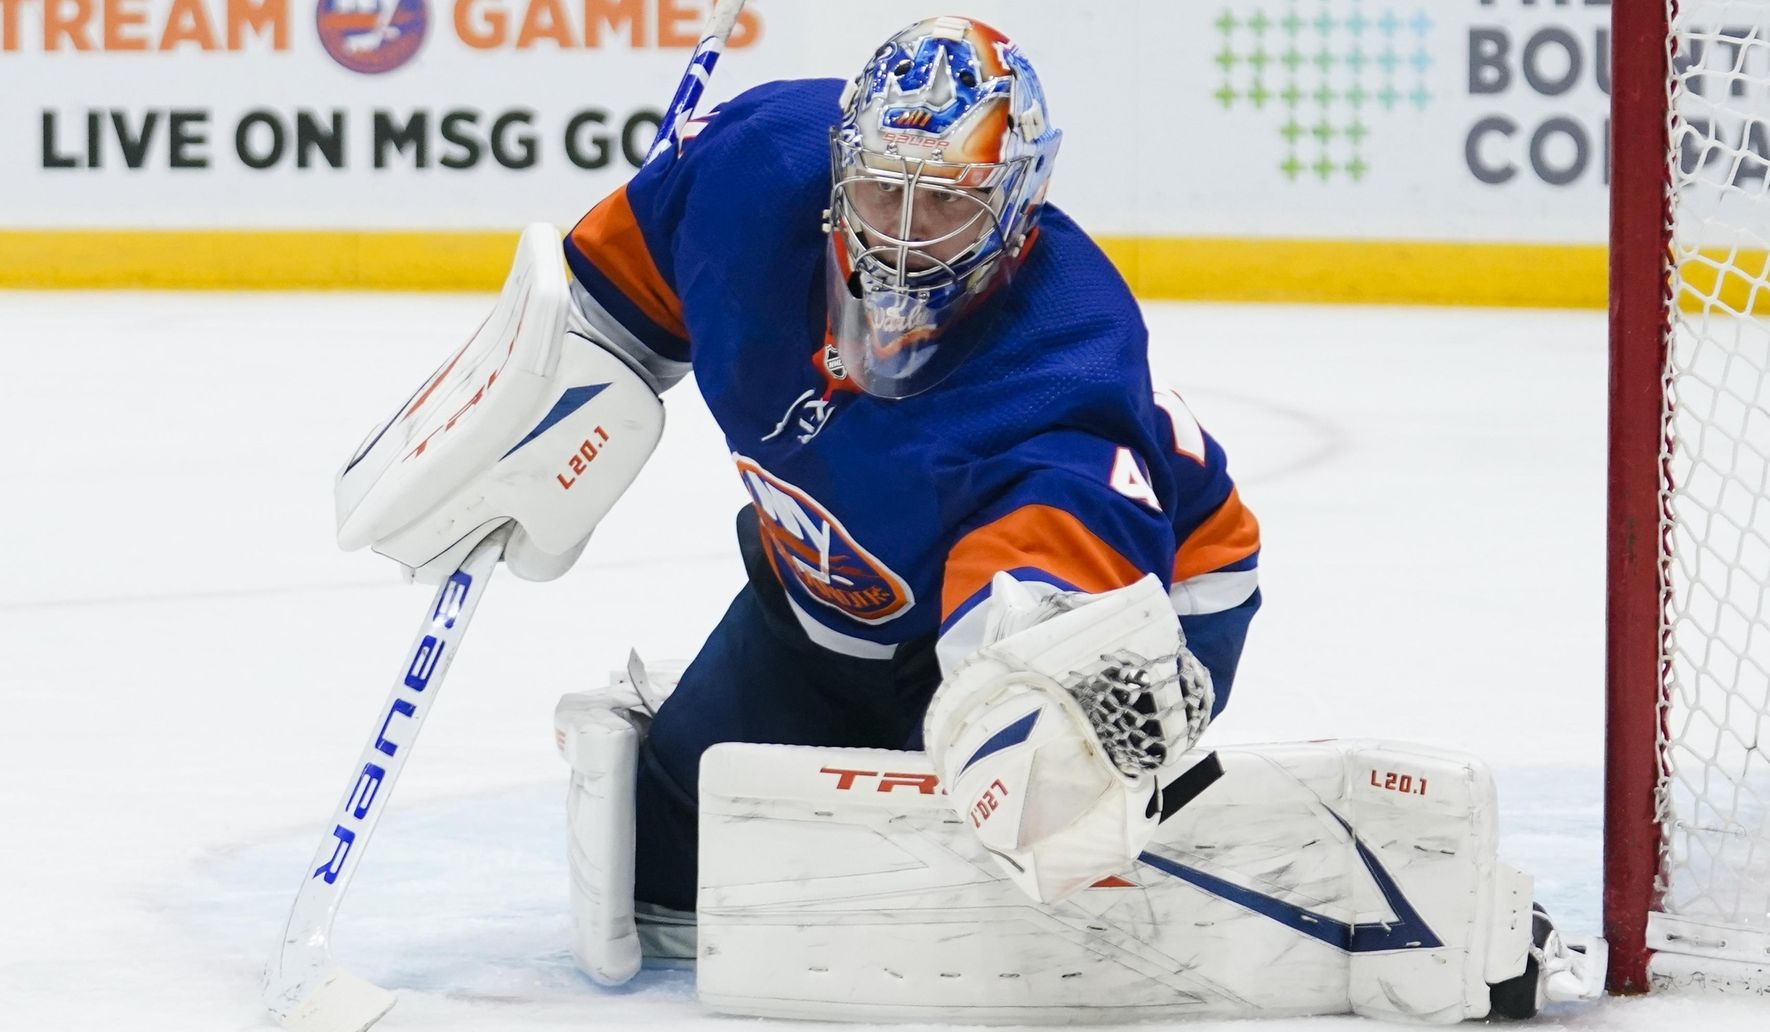 Isles top Rangers 6-1, tie Capitals for 1st place in East